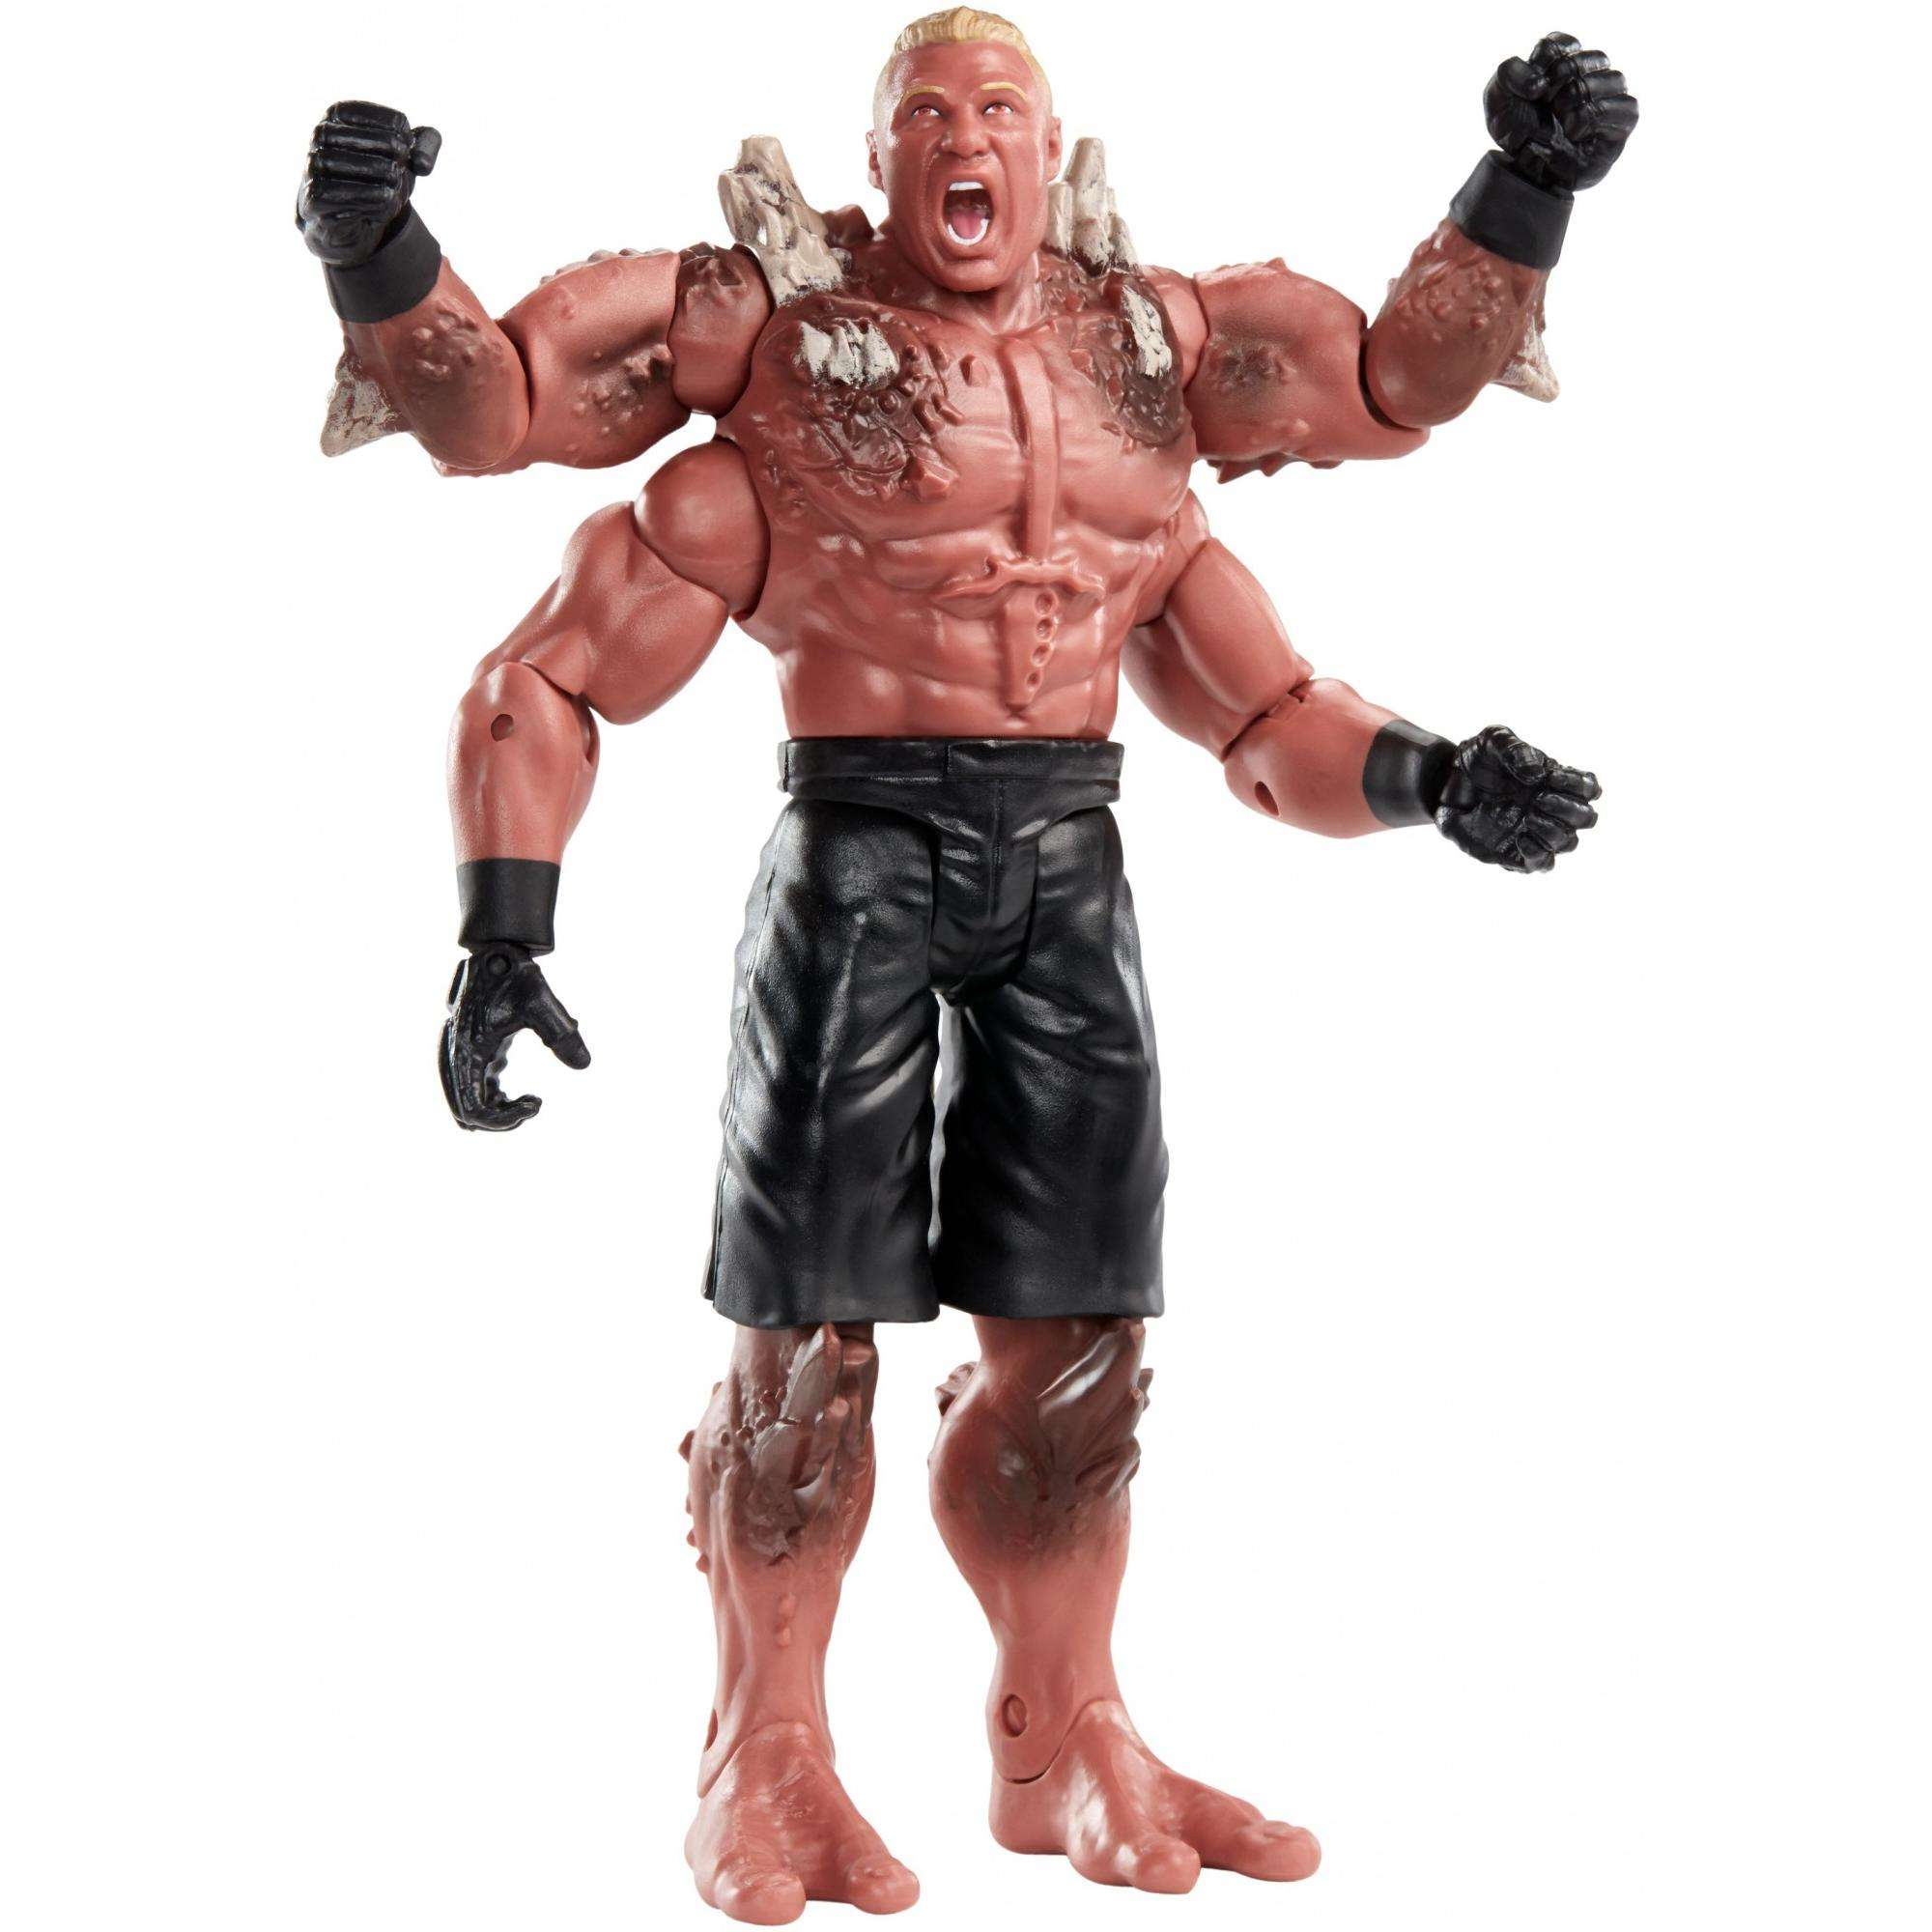 WWE Mutant Brock Lesnar Figure